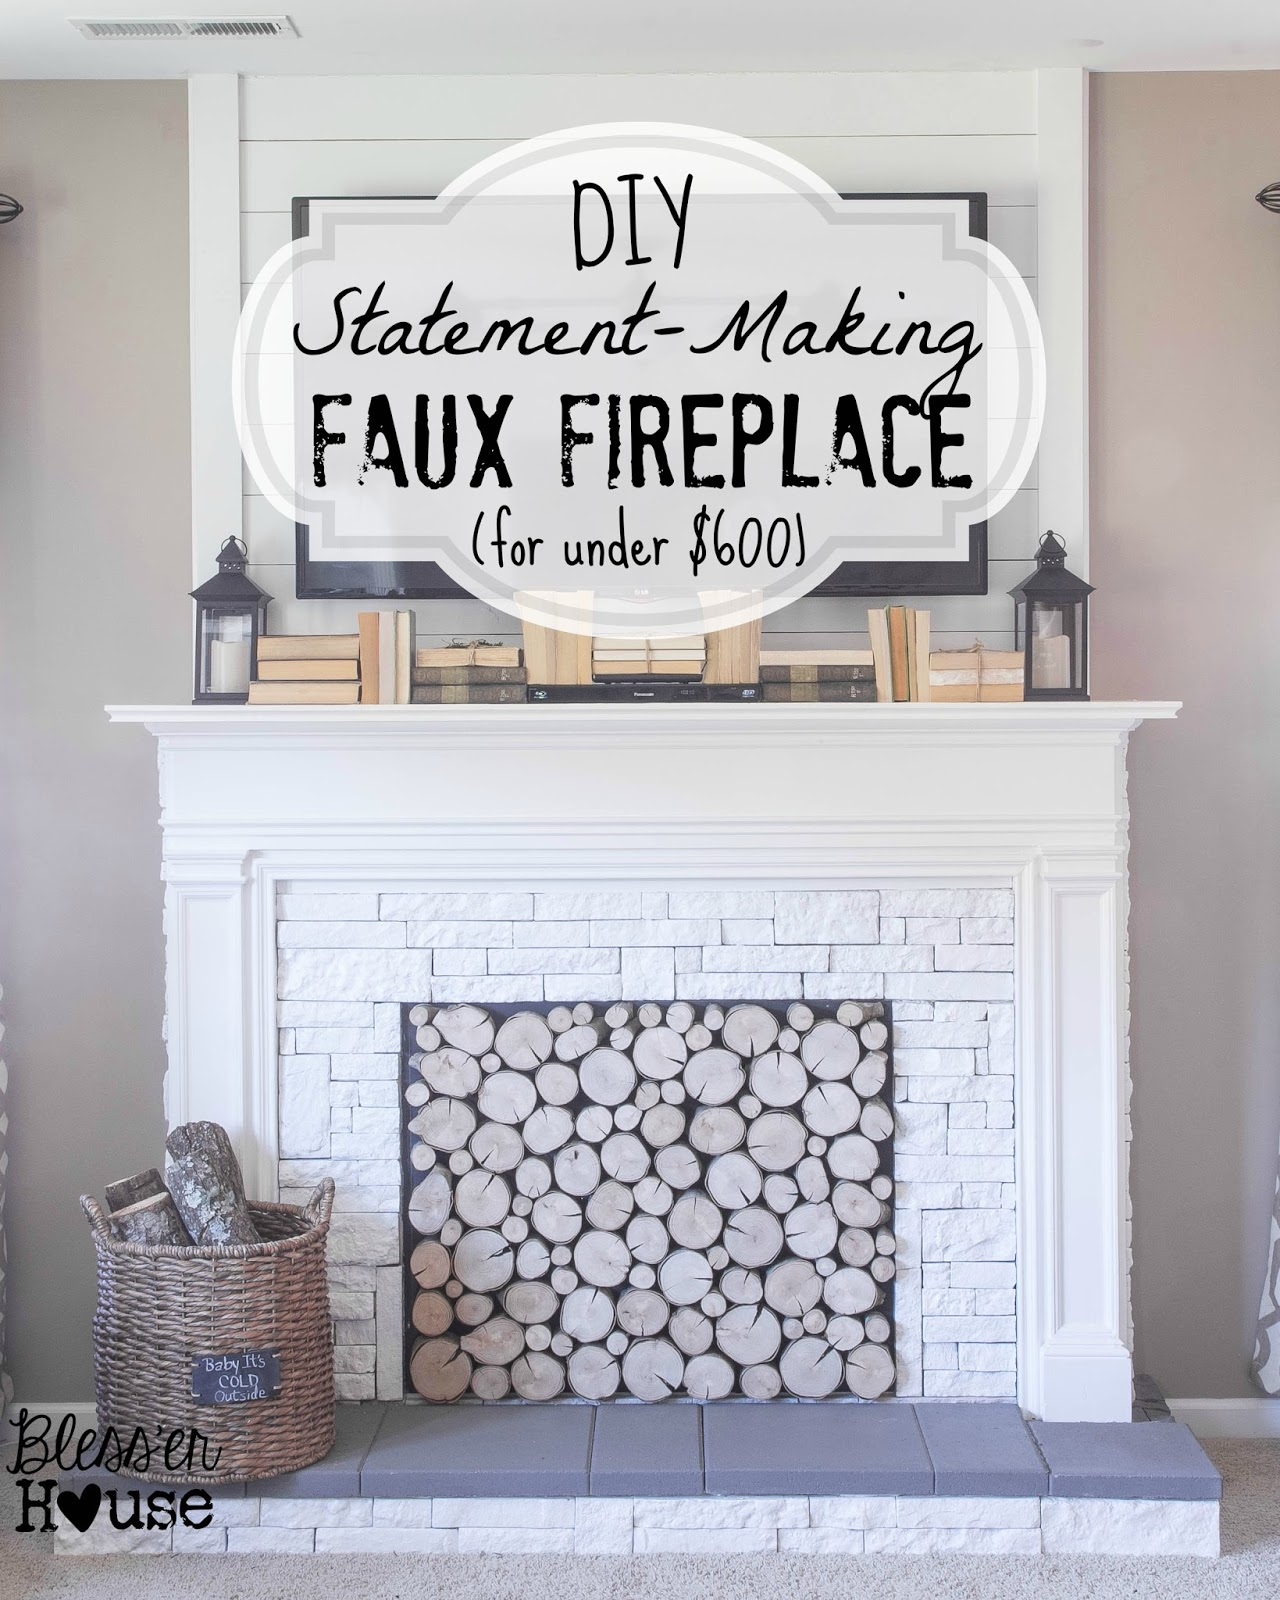 Remodelaholic how to build a faux fireplace and mantel if youve been dying for a fireplace in your home but dont have thousands of dollars in your pocket this is definitely the way to go diy solutioingenieria Images